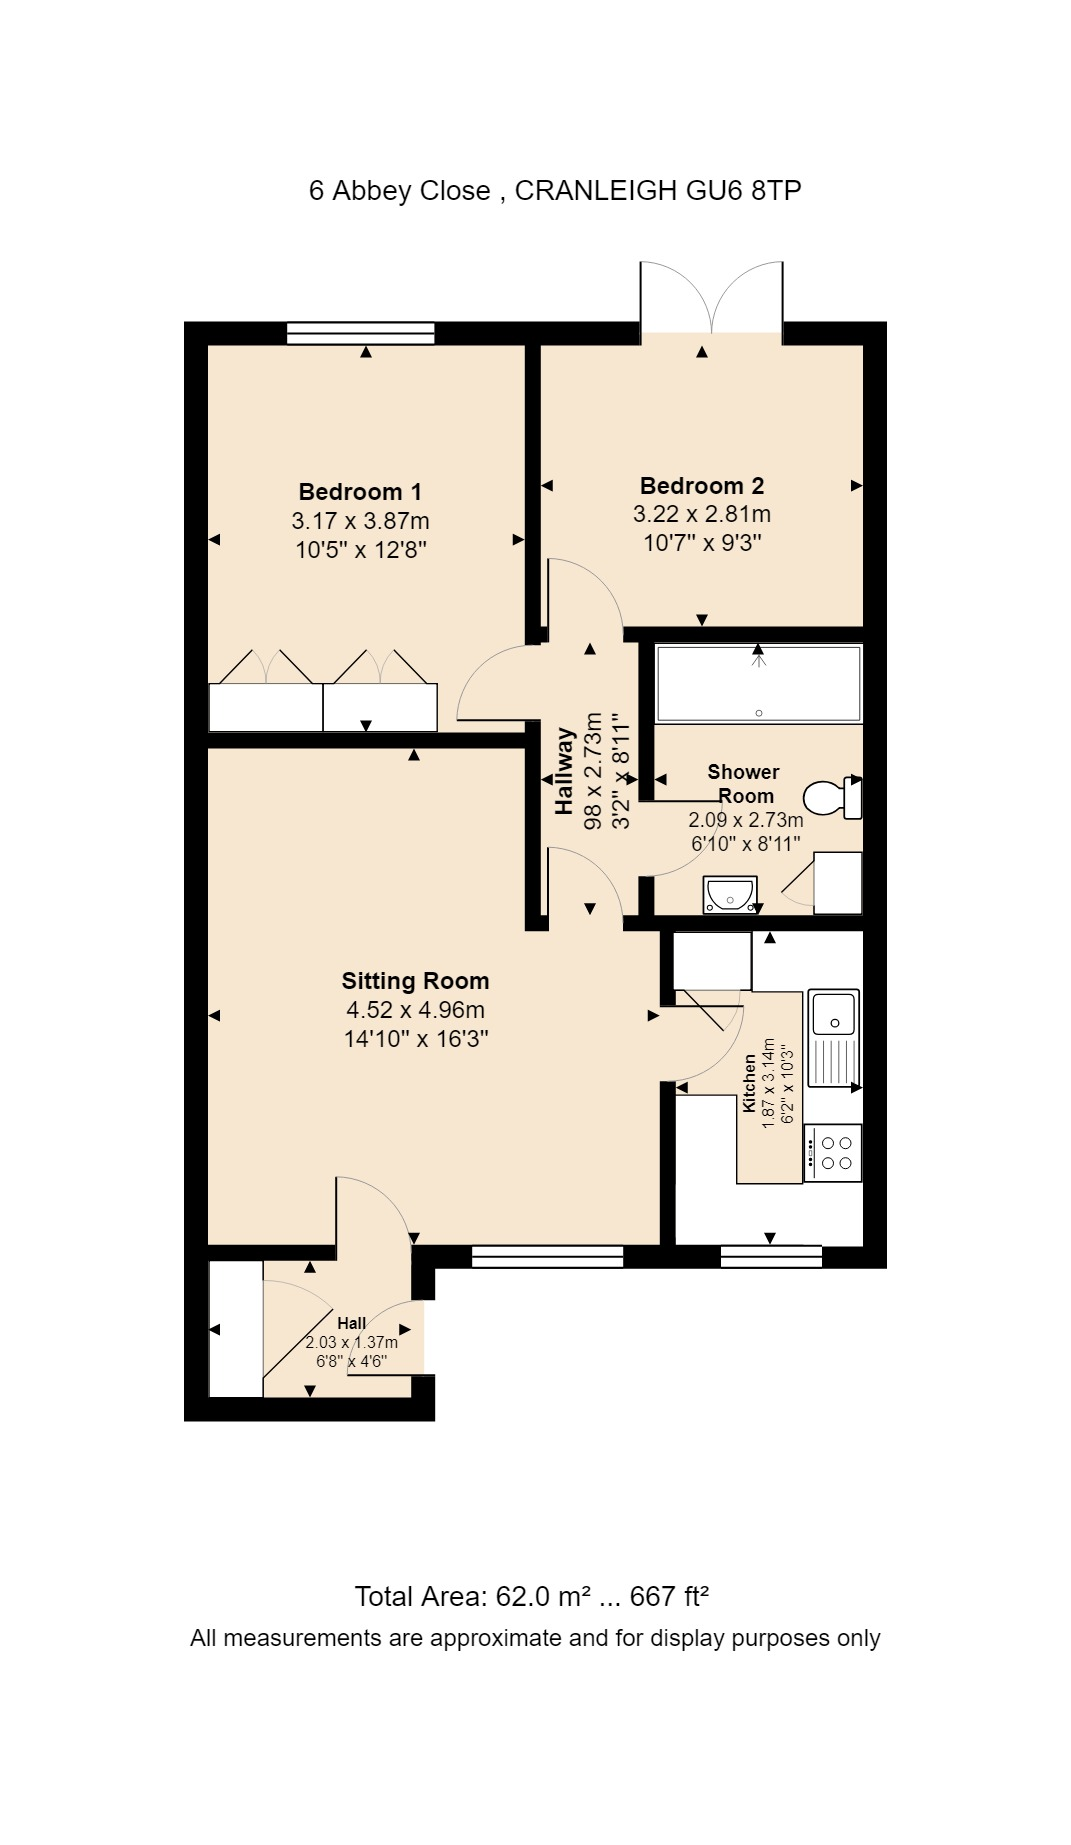 6 Abbey Close Floorplan